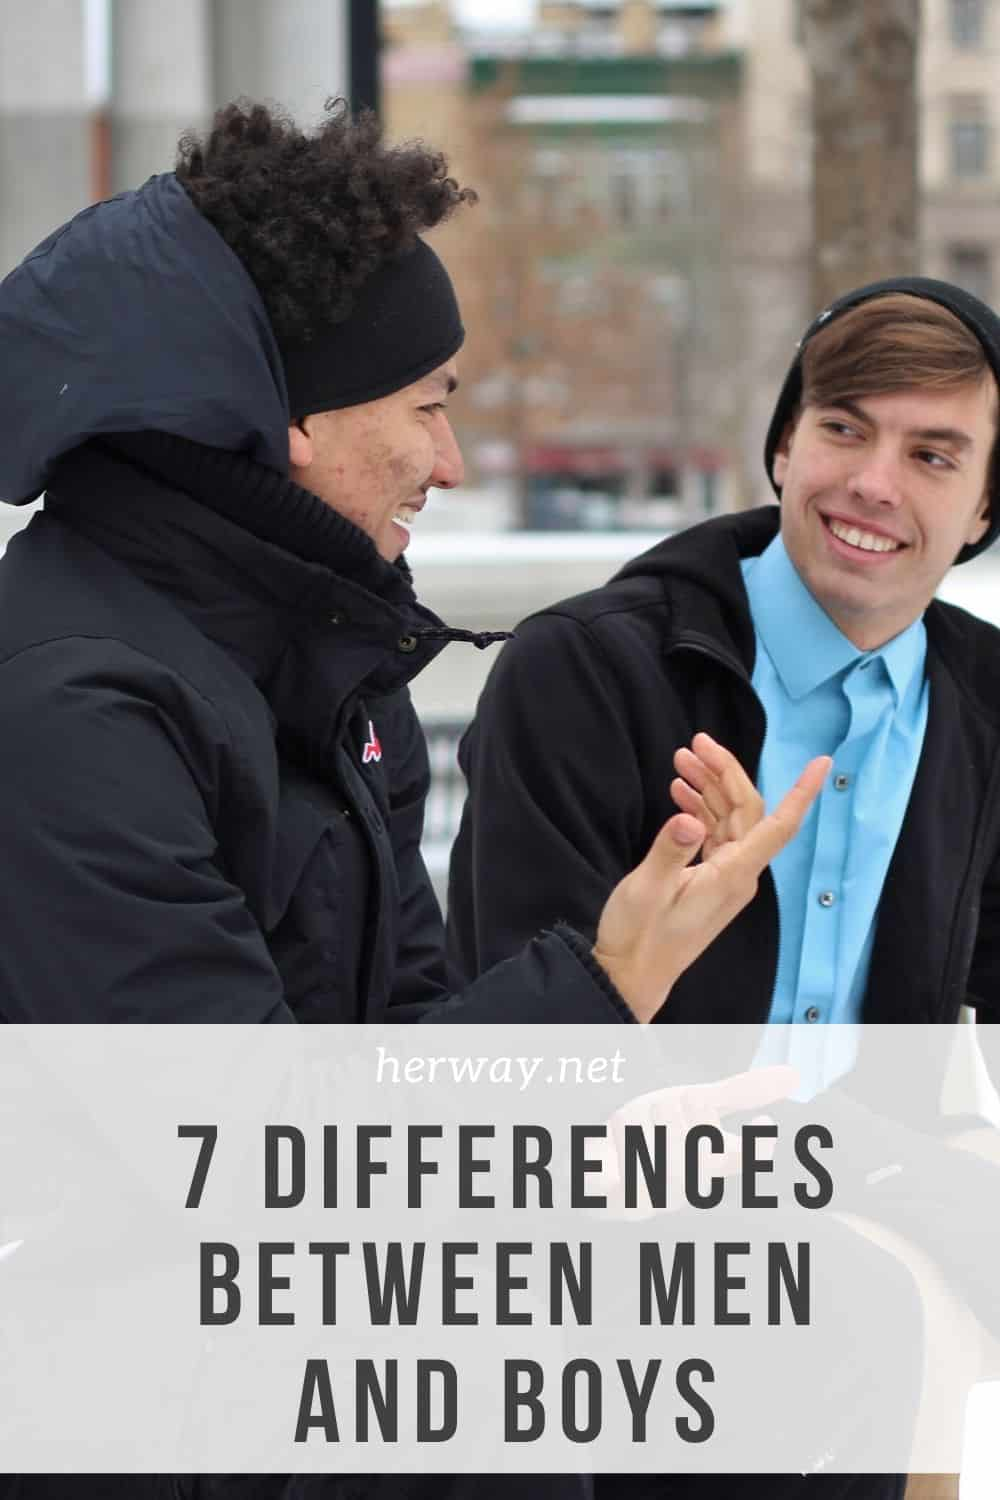 7 DIFFERENCES BETWEEN MEN AND BOYS